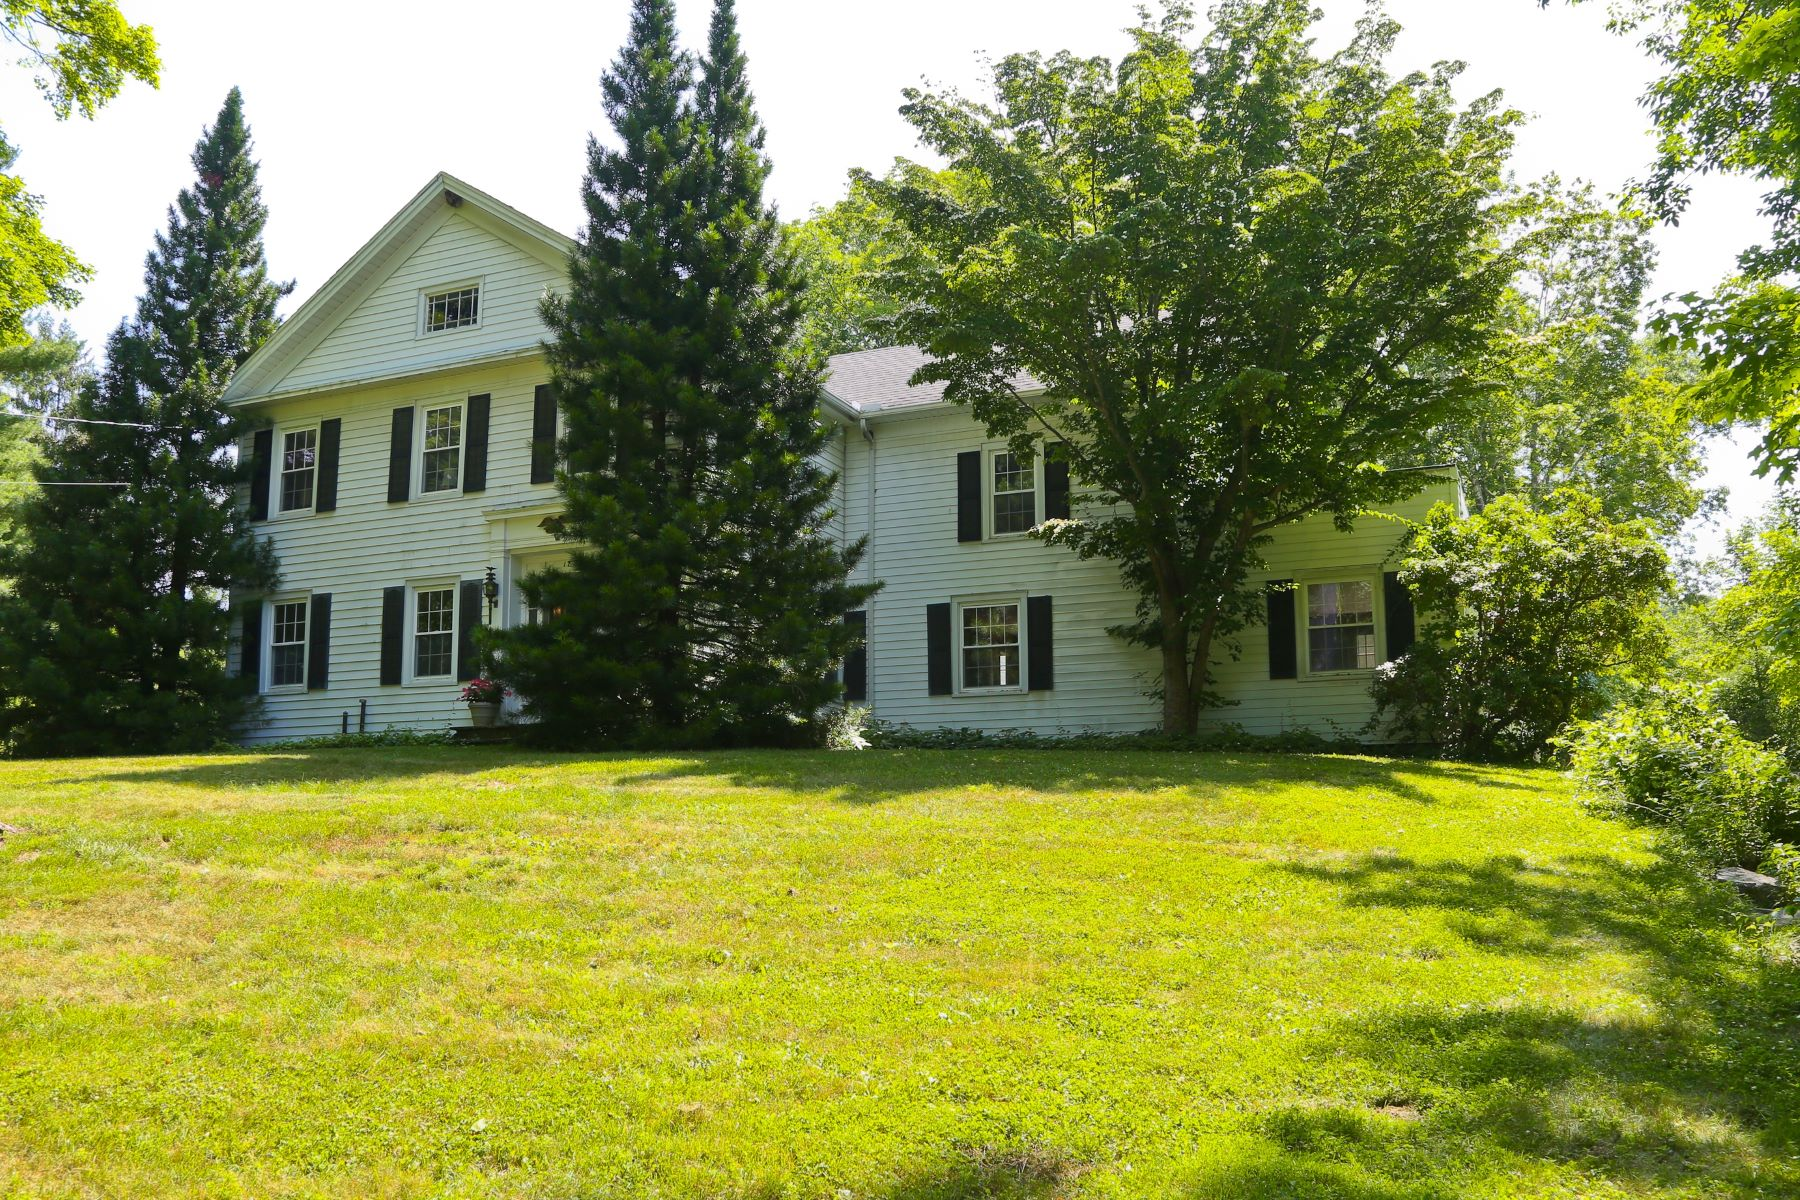 Single Family Home for Sale at Classic Connecticut Antique 113 Popple Swamp Cornwall, Connecticut, 06796 United States